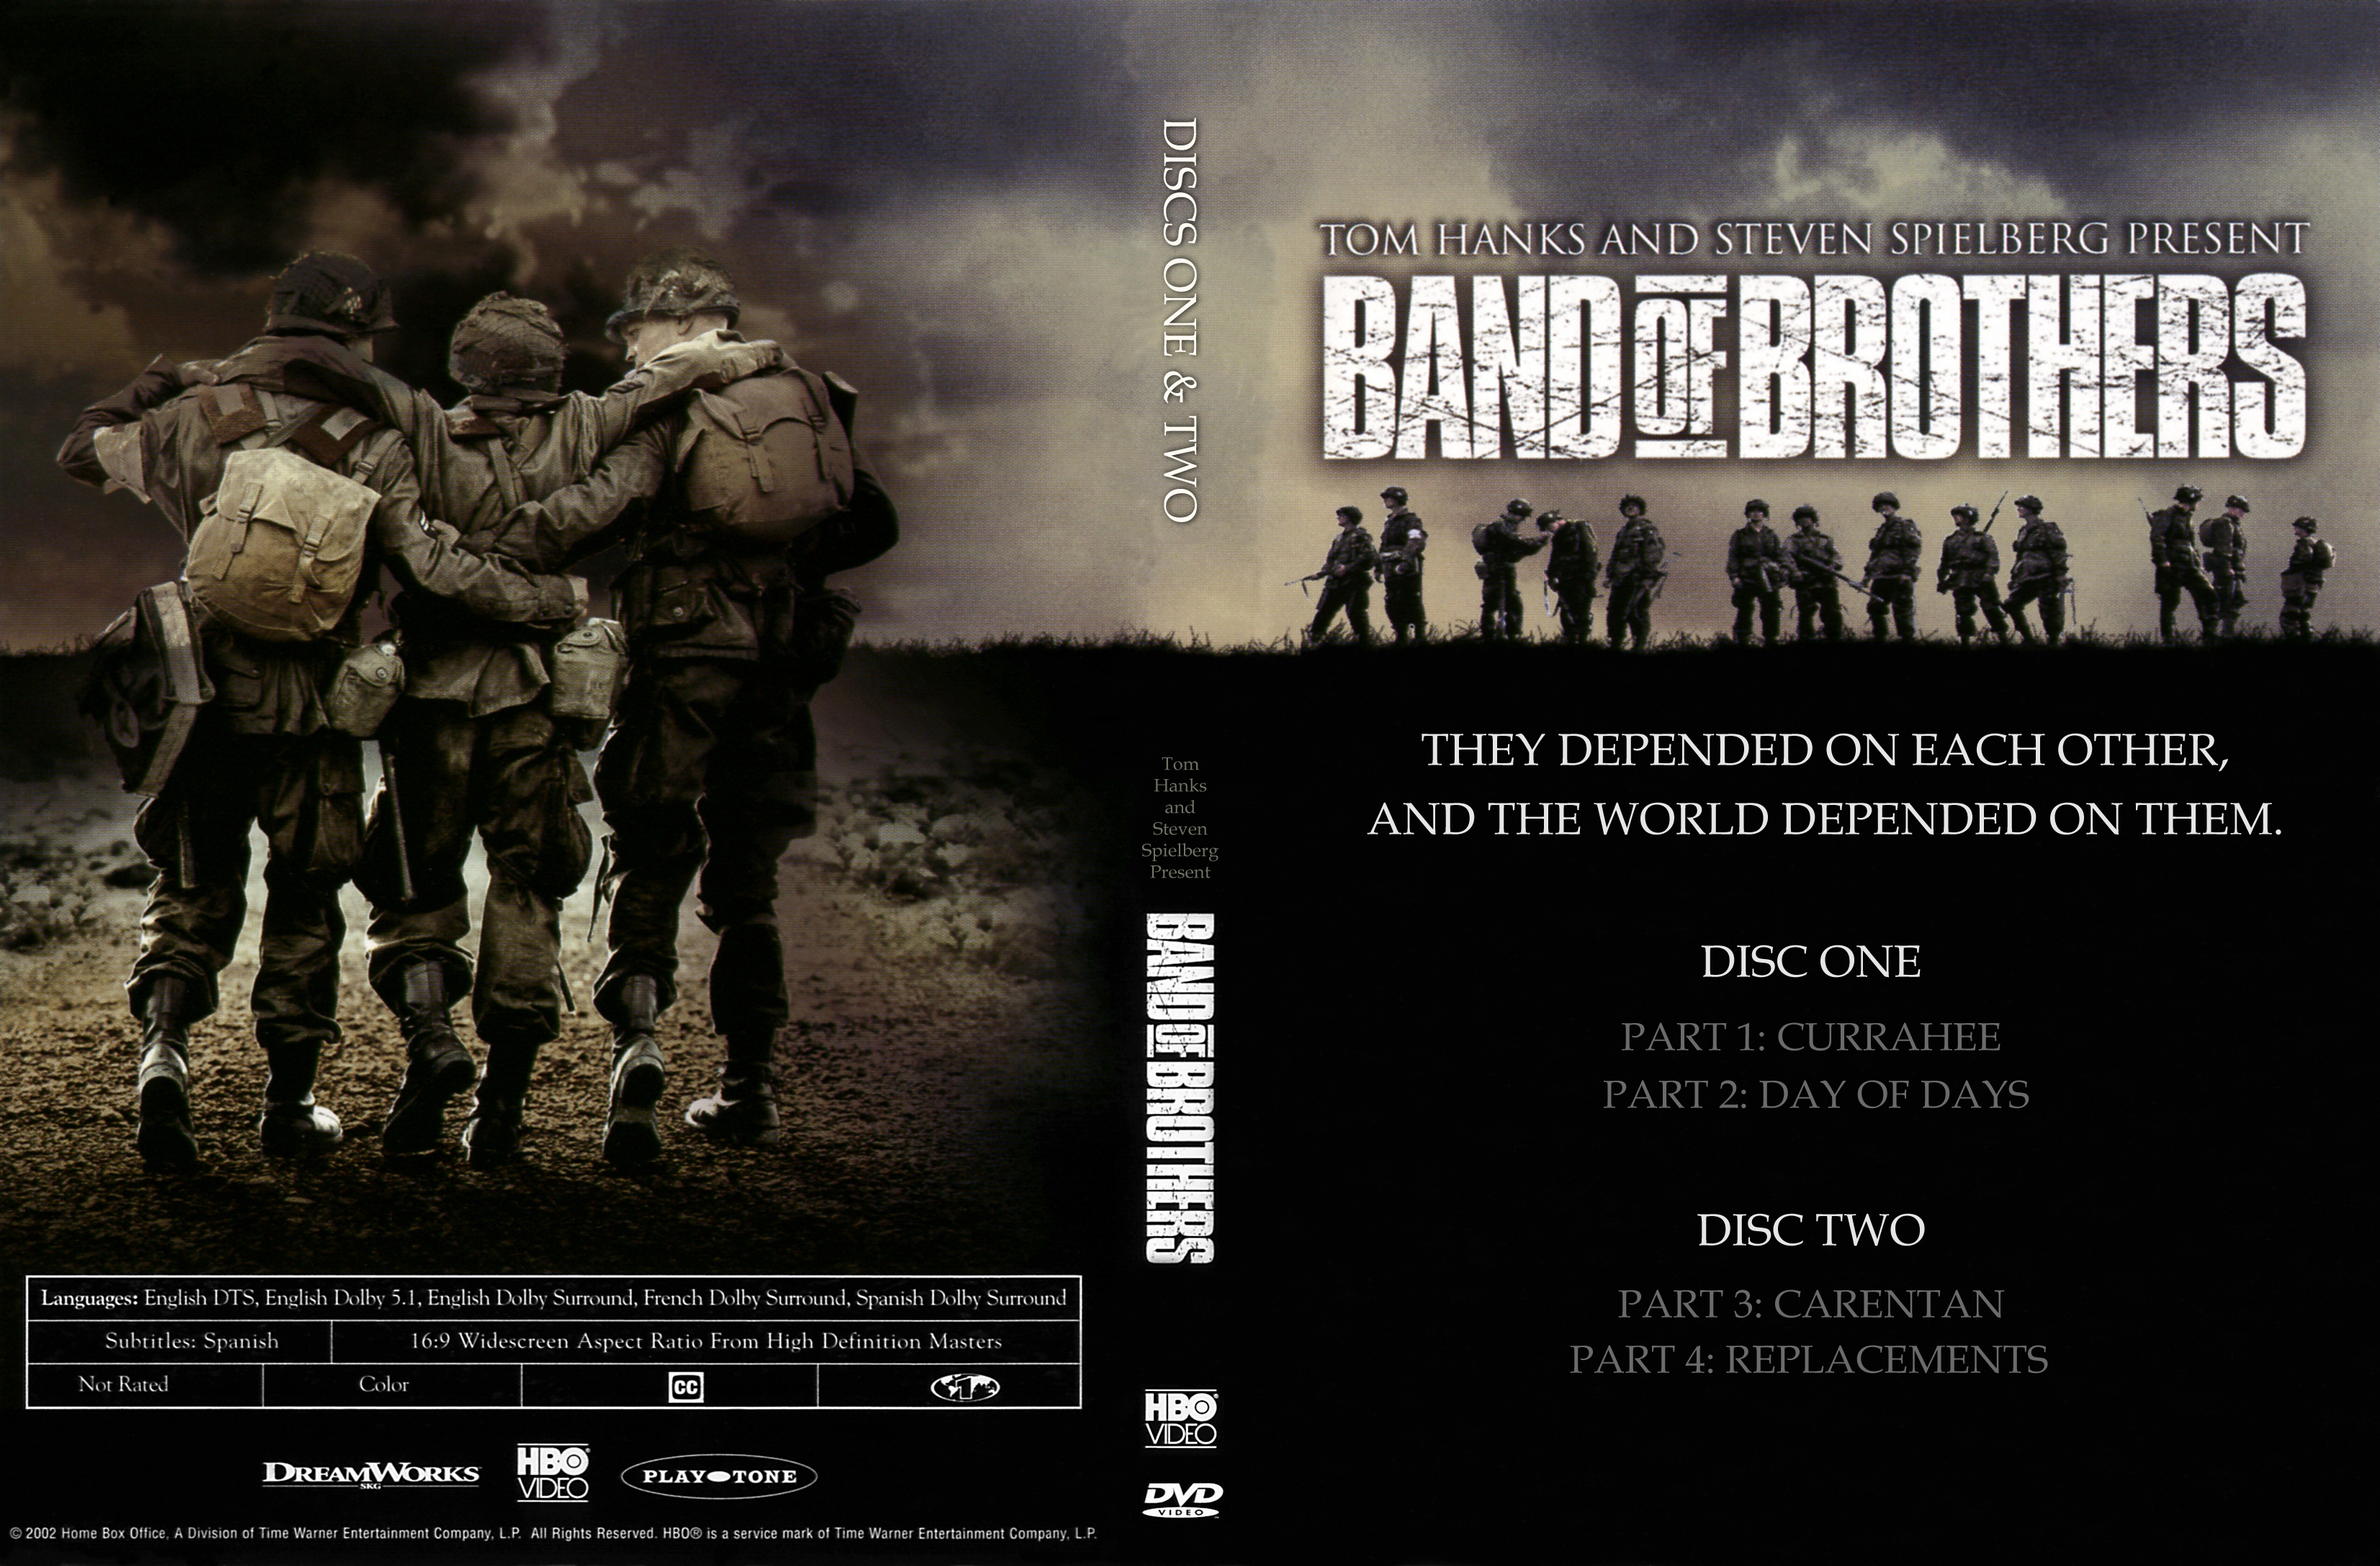 Band of brothers discs 1-2 English